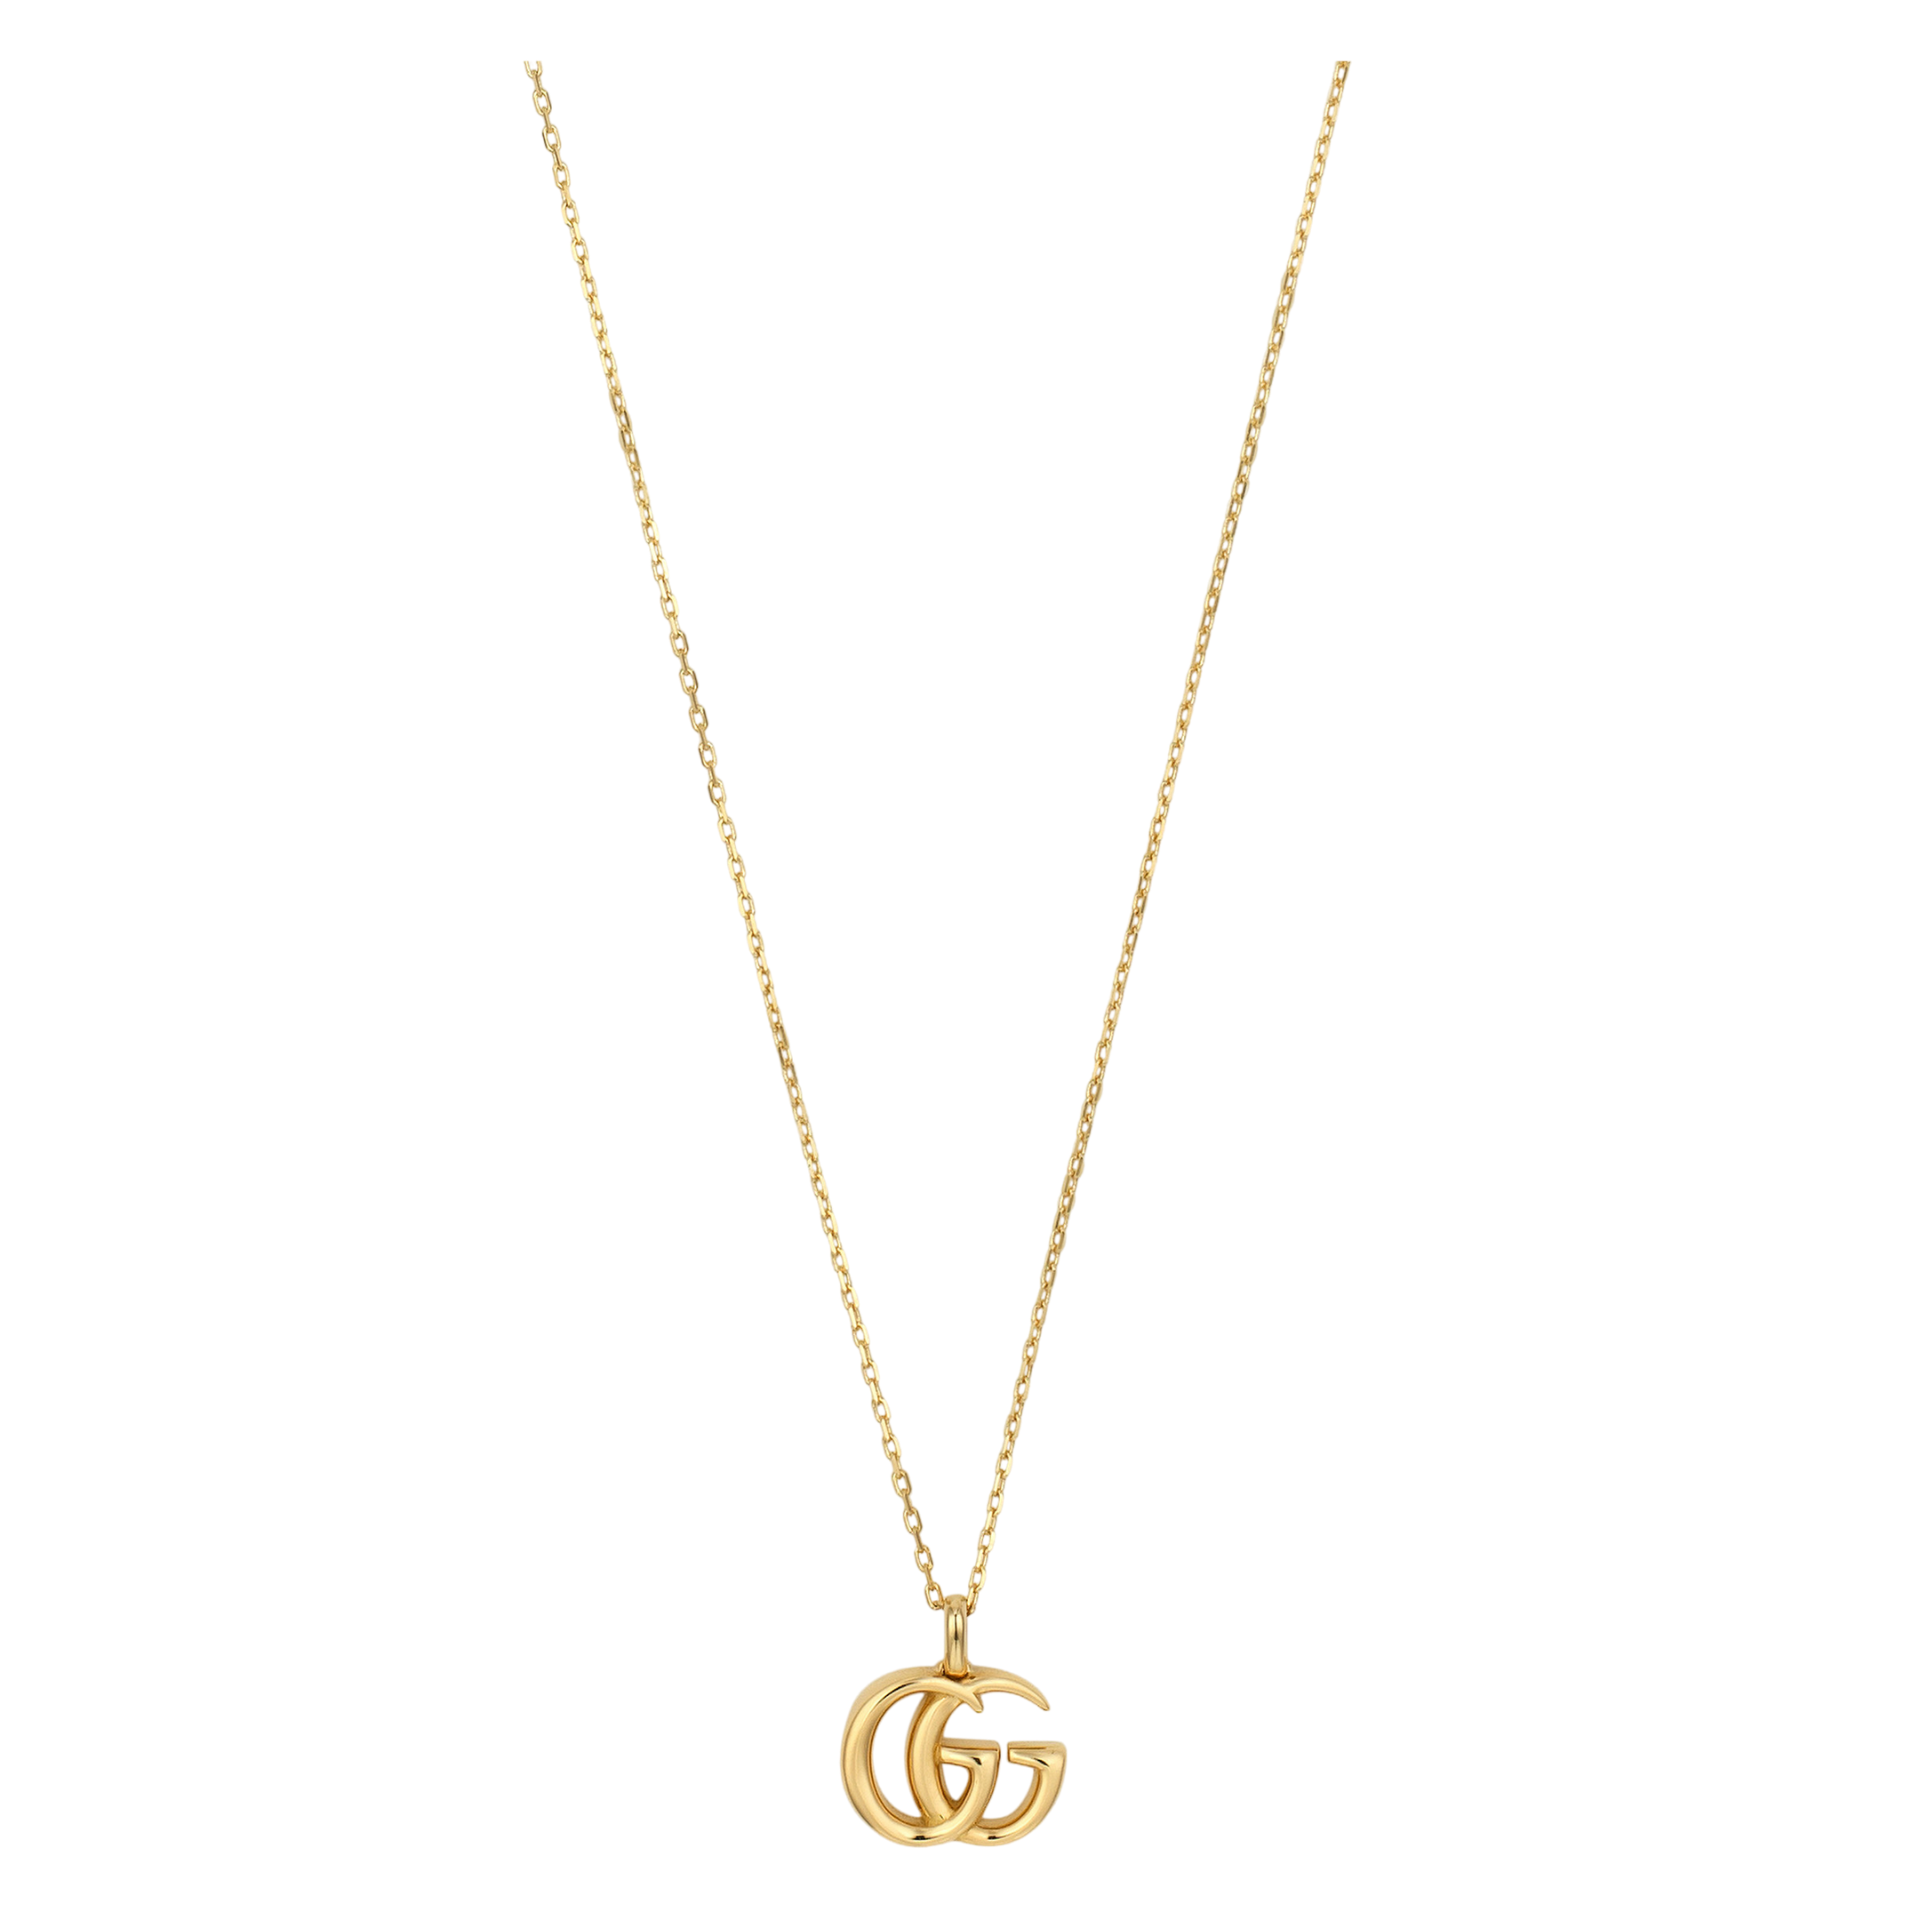 Gucci GG Running Necklace in 18k Yellow gold with Double G Pendant - Orsini Jewellers NZ